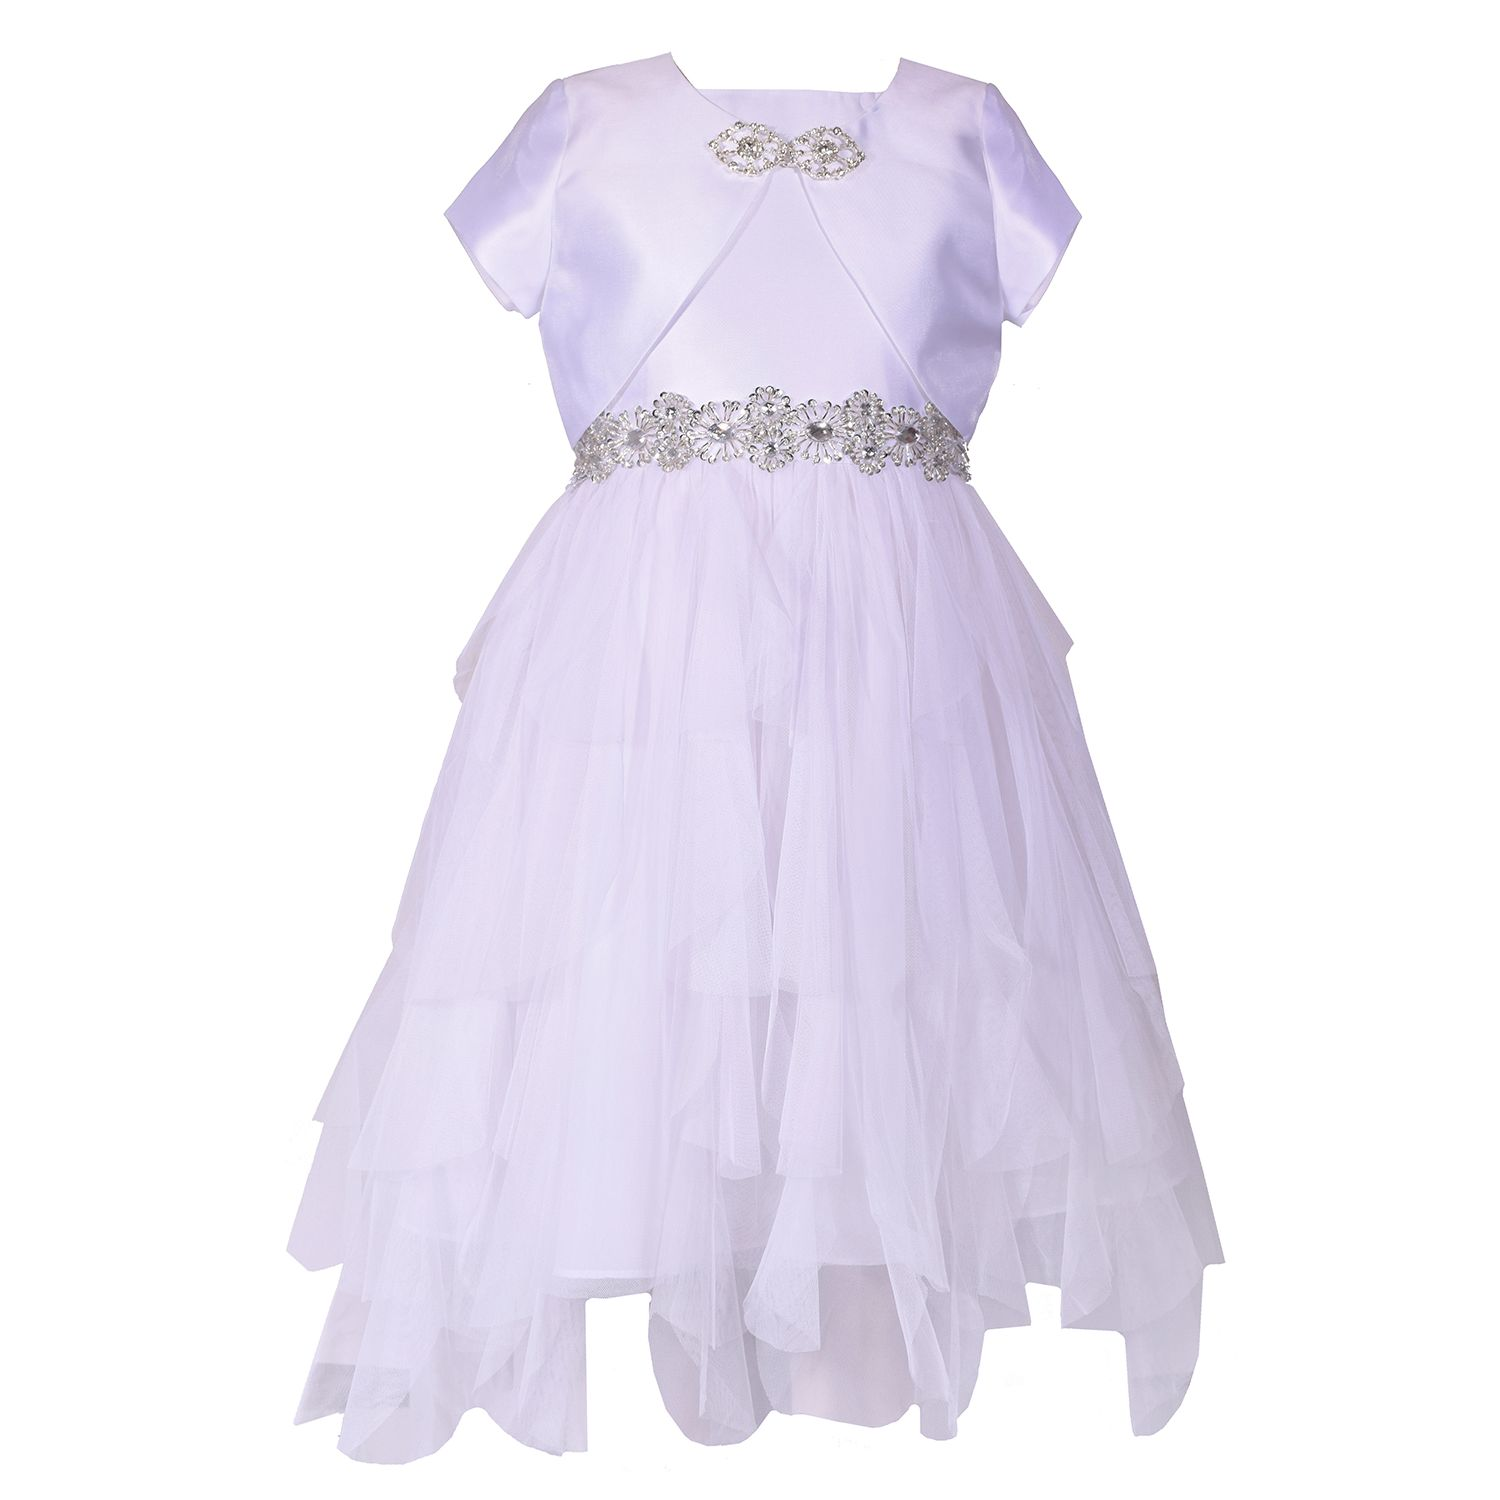 Girls Dressy Kids Dresses b91d3ec8f